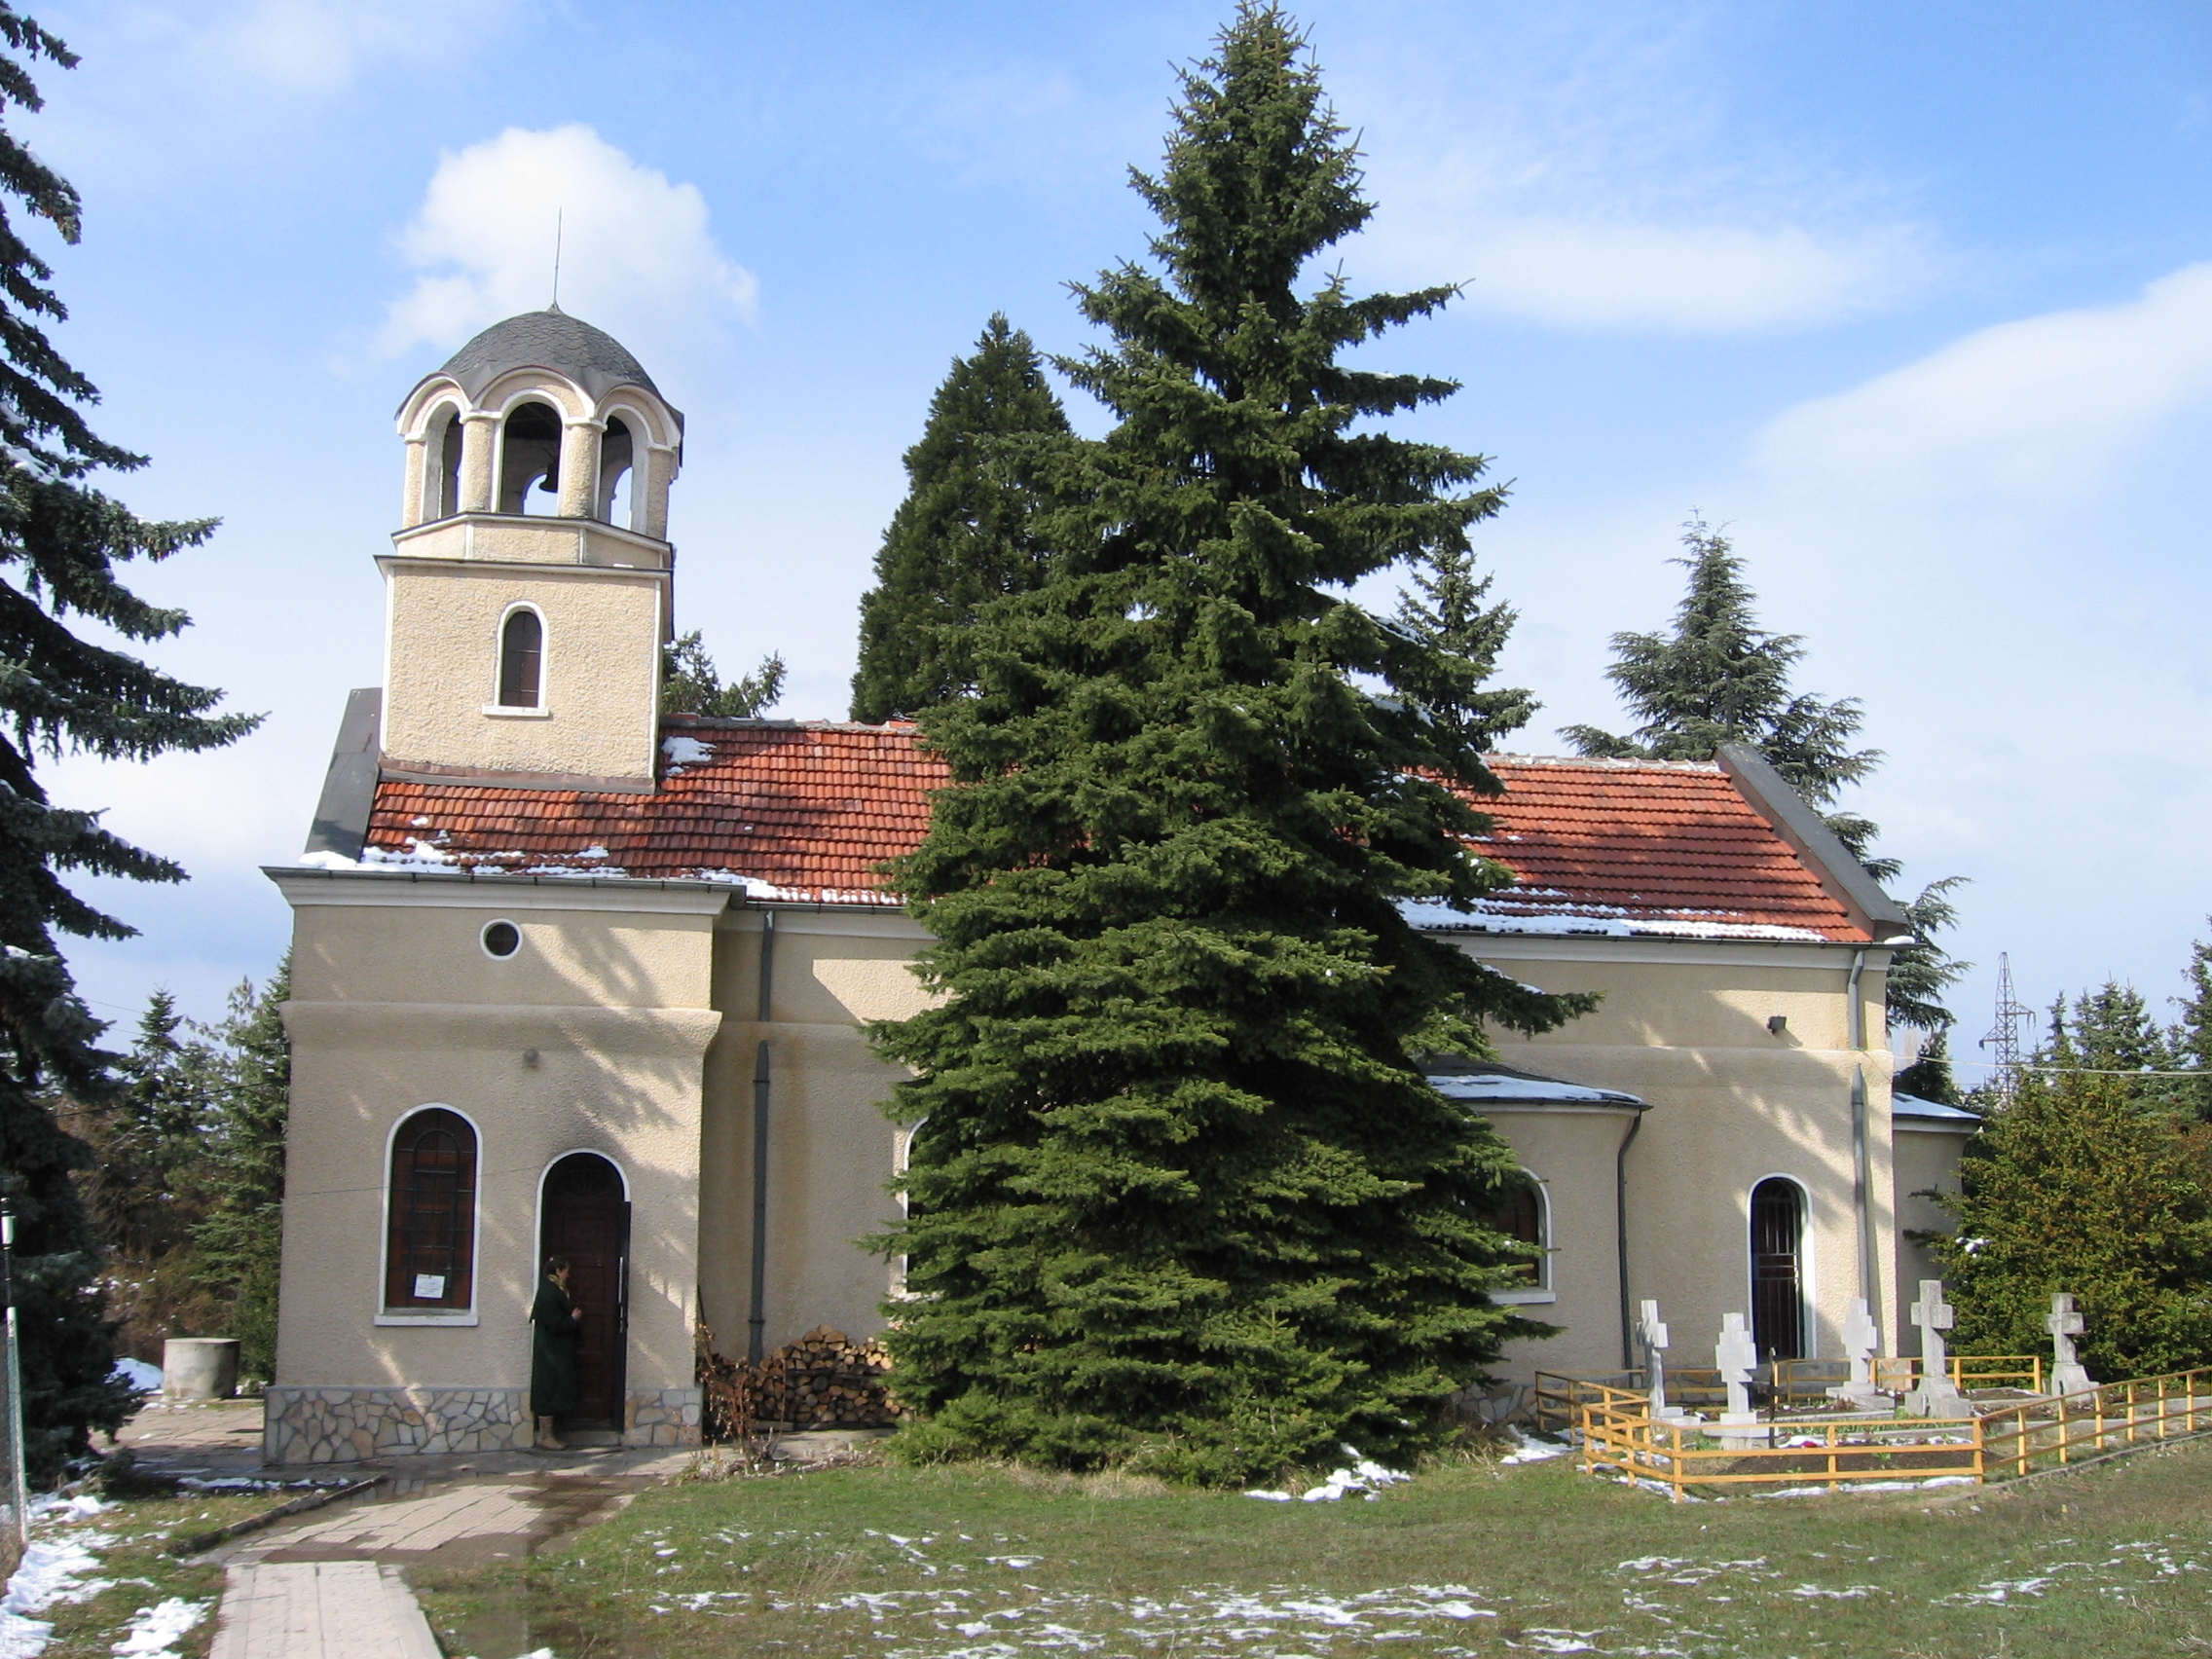 sveti Eliah monastery Church in mladost 2 suburb monastery near heart of Sofia